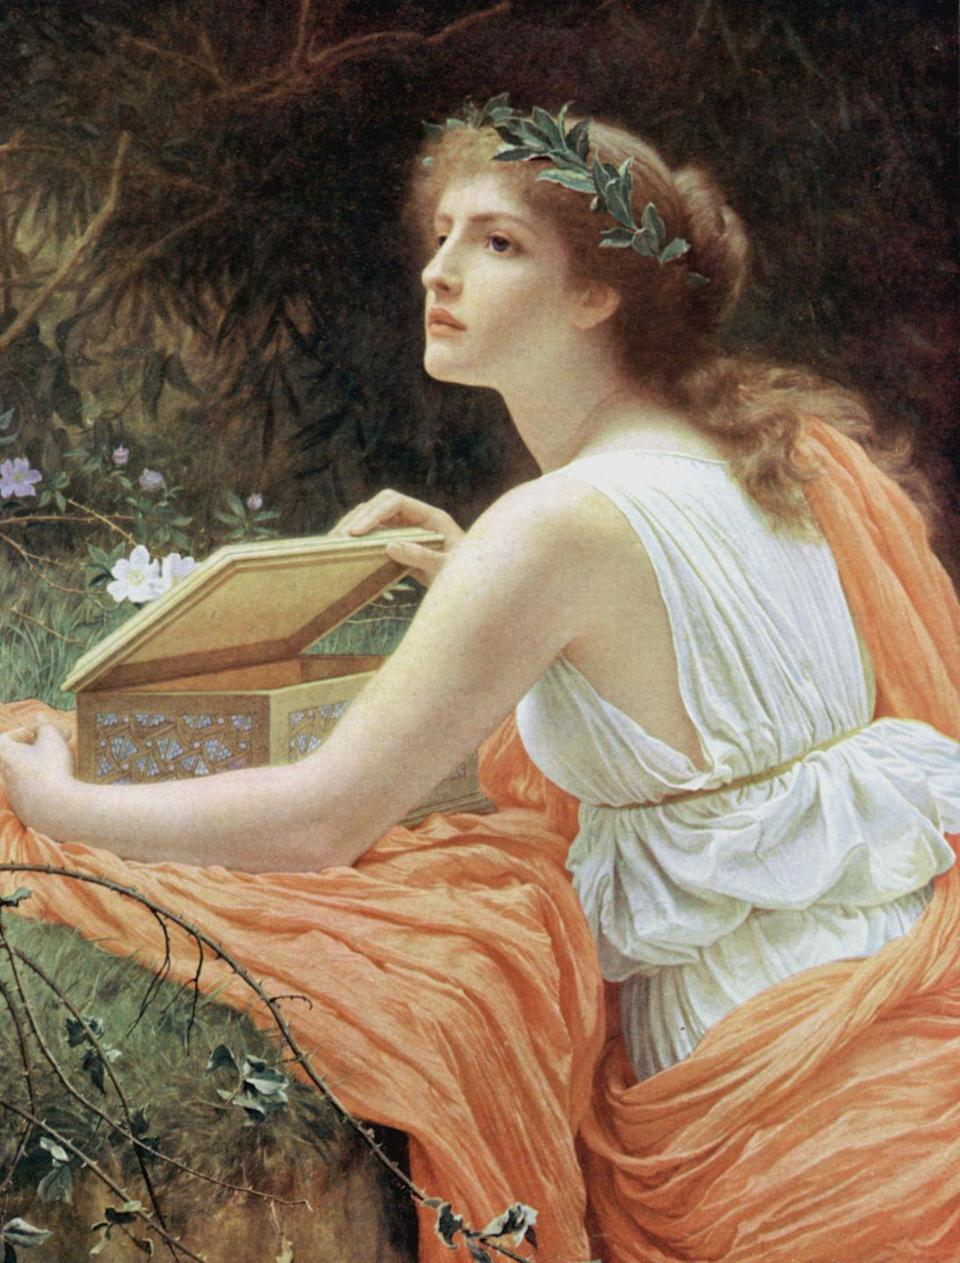 <p>Ancient Greece's garments have long served as modern fashion inspiration for their ethereal looks. But at the time, the dresses were designed mostly for comfort and functionality. Women opted for silk and linen, because of the hot climate and no sewing was required. </p>